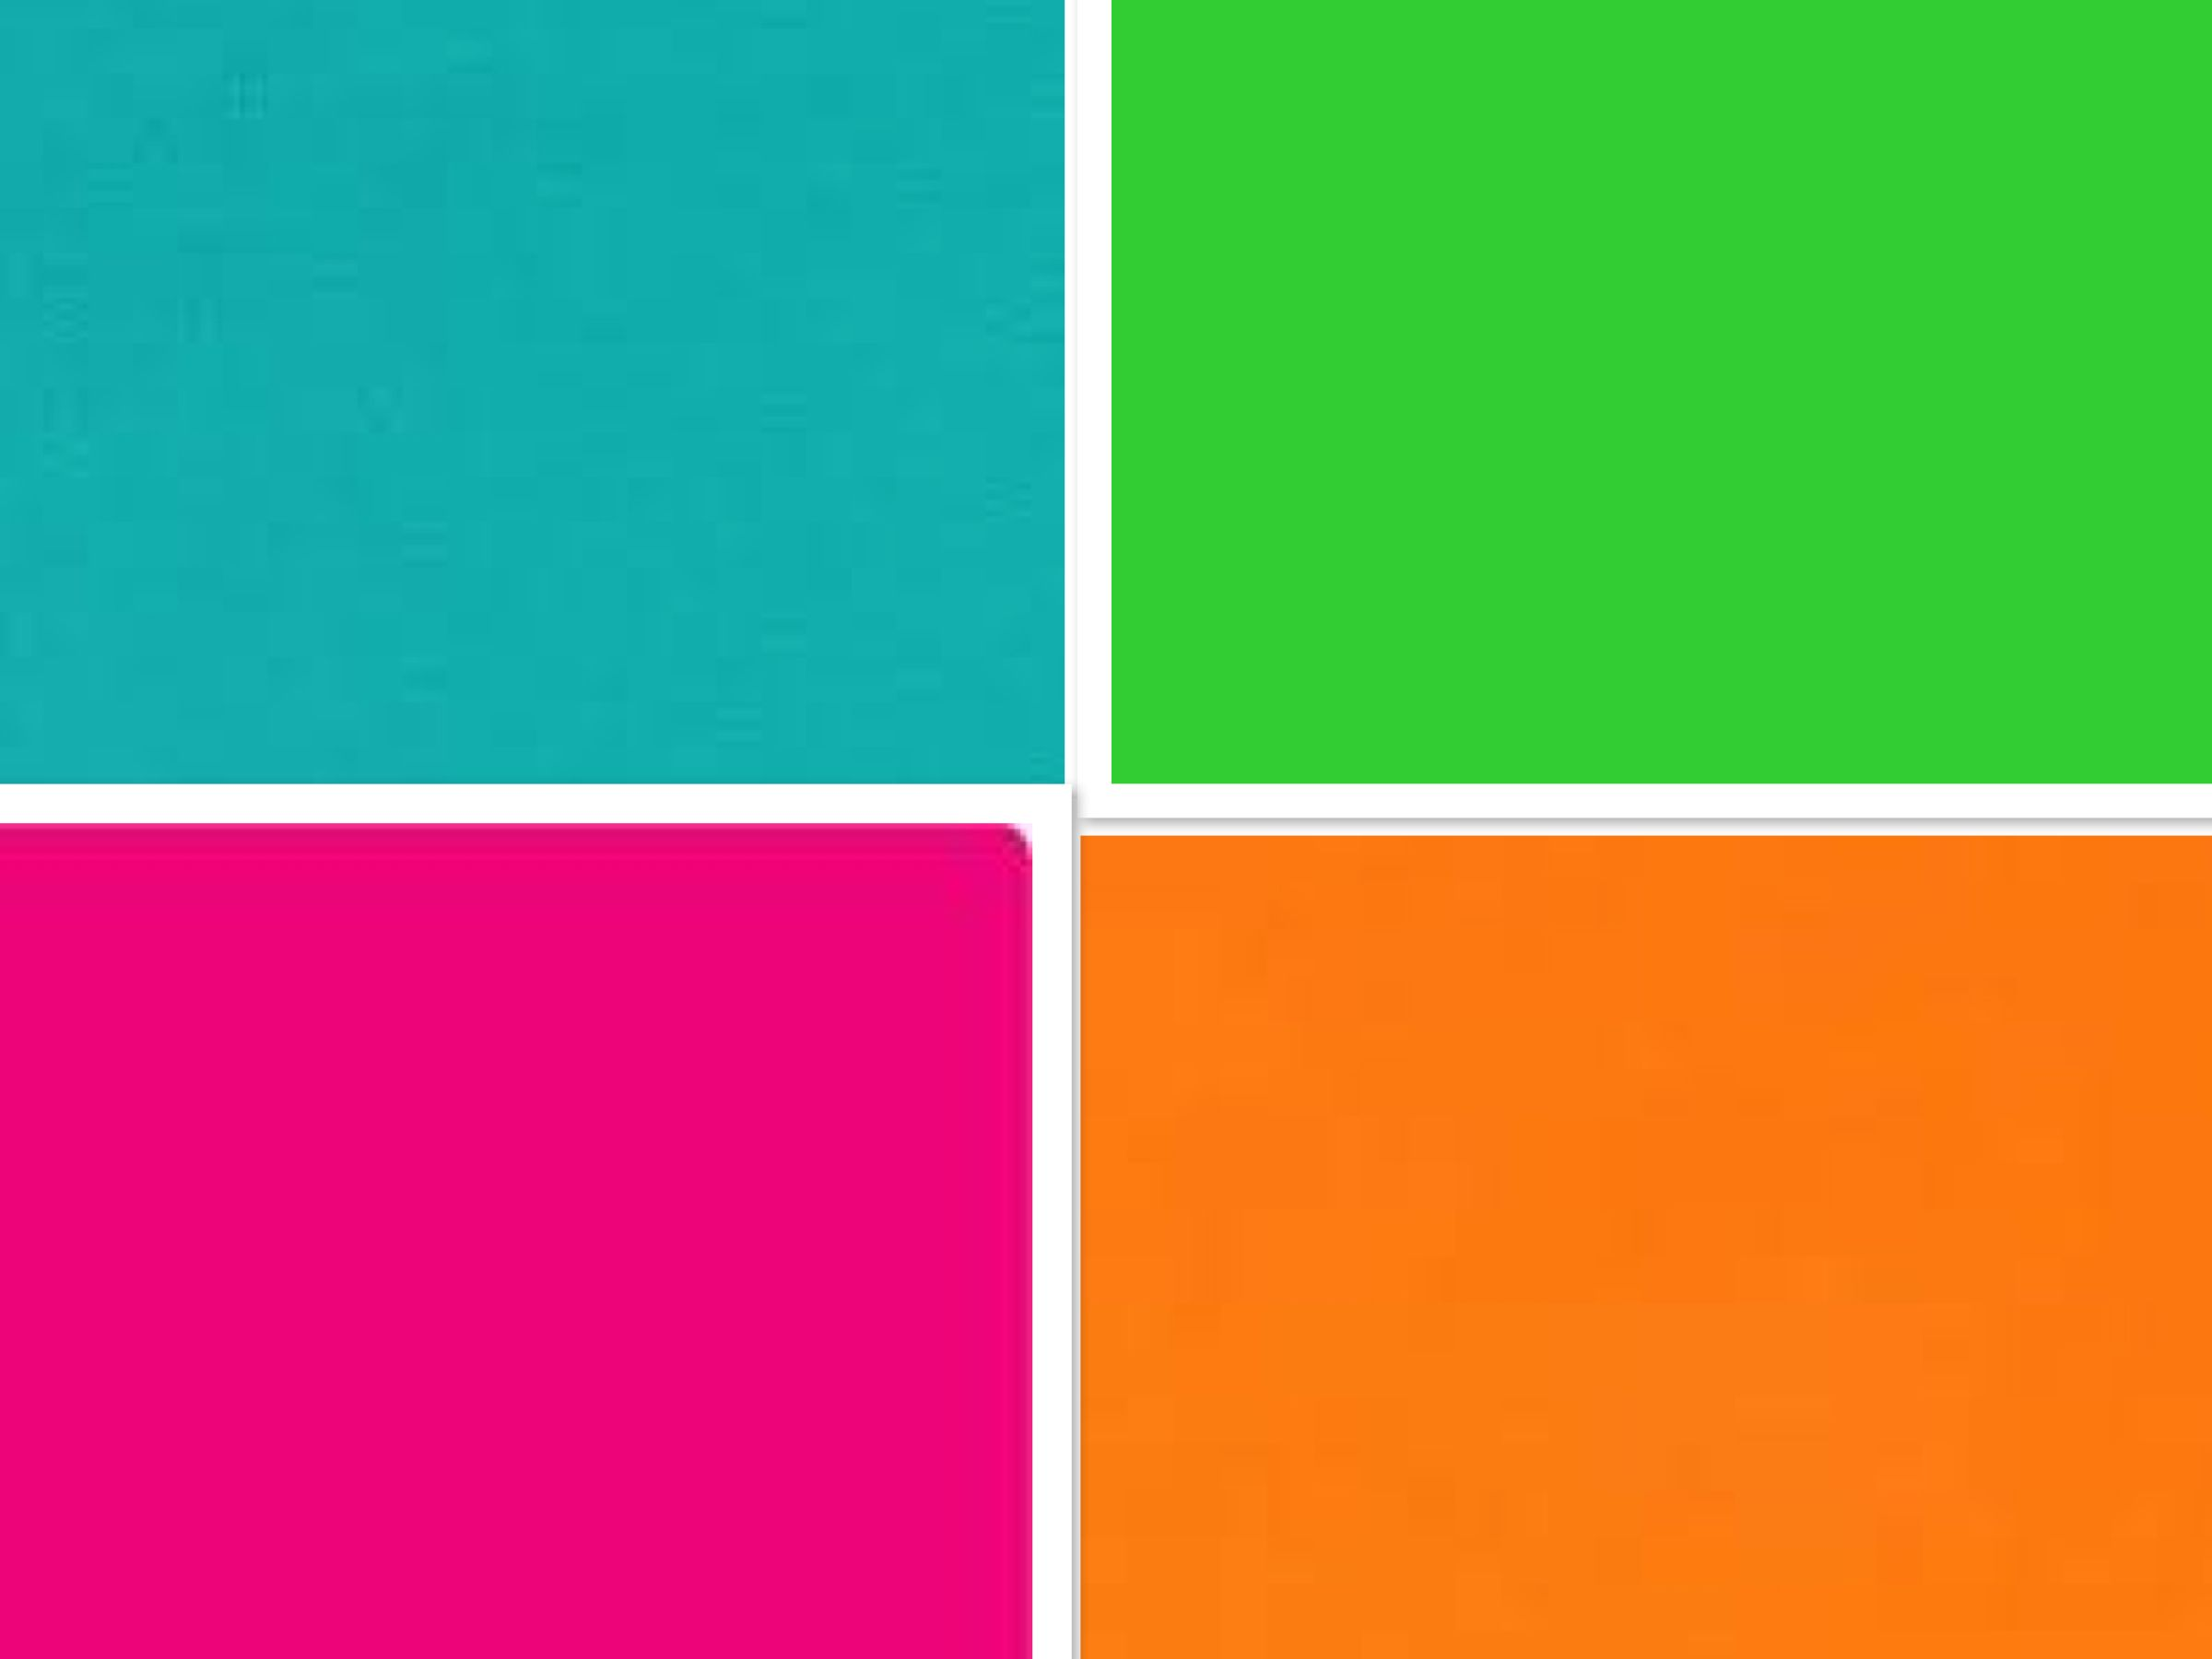 Nice Bright Color Palette With Pin It Like 1 Image